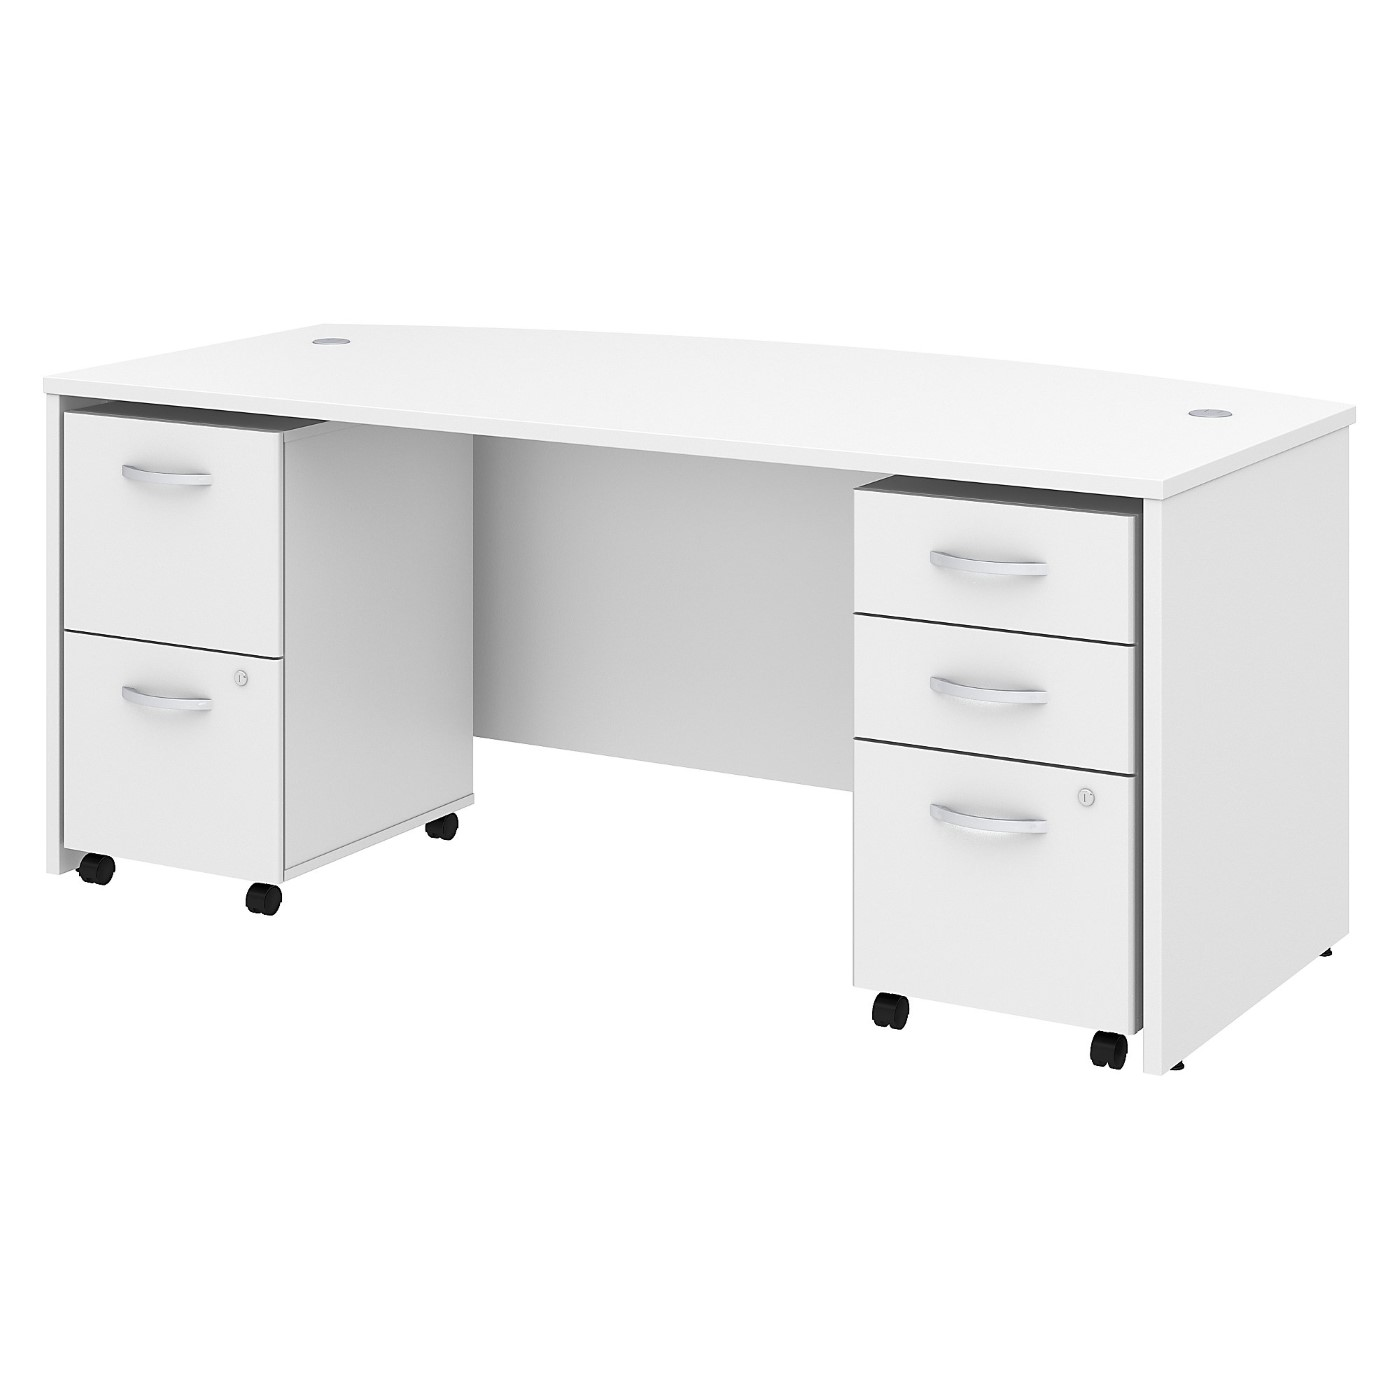 BUSH BUSINESS FURNITURE STUDIO C 72W X 36D BOW FRONT DESK WITH MOBILE FILE CABINETS. FREE SHIPPING